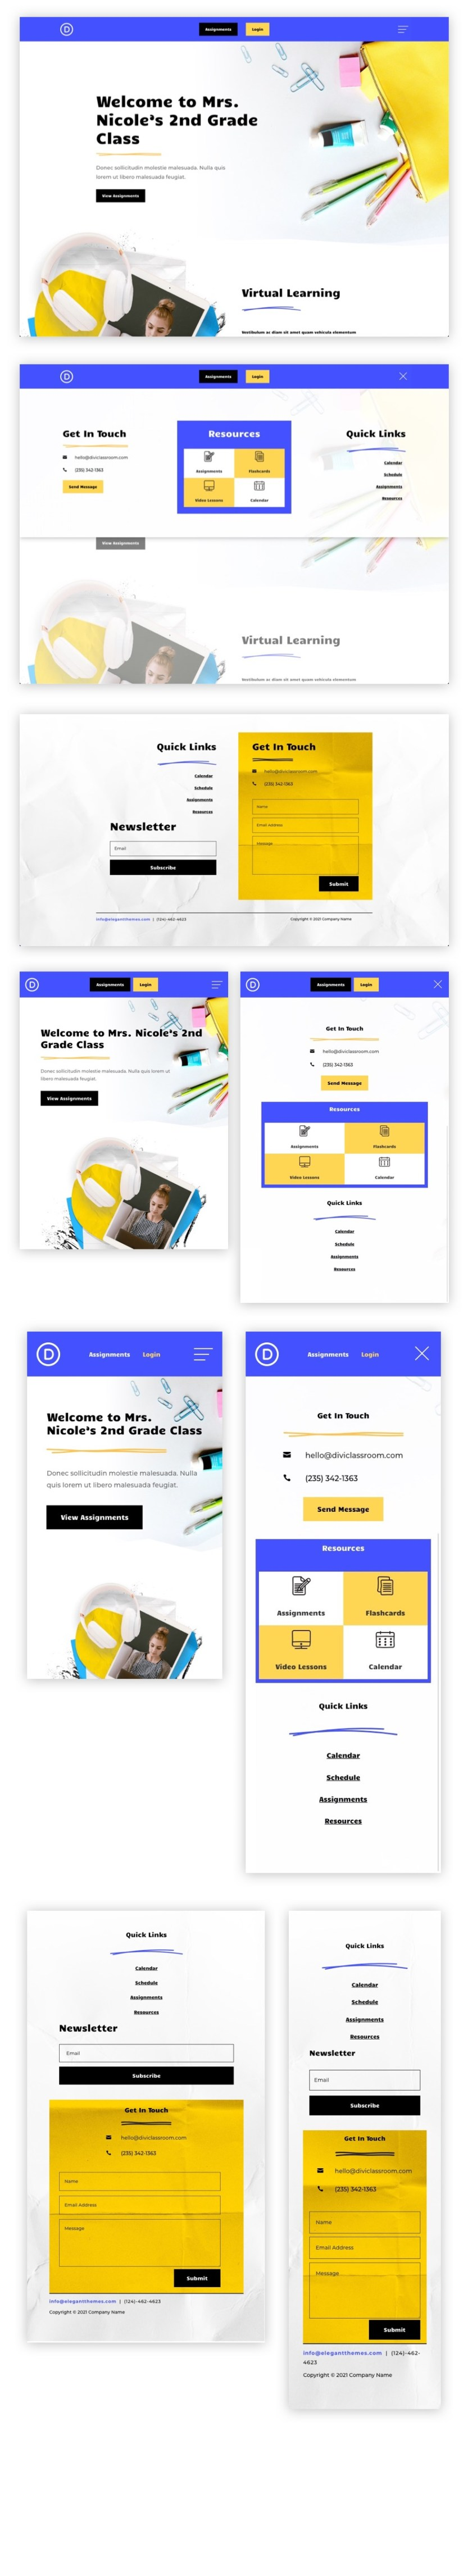 header and footer template for divi's classroom layout pack